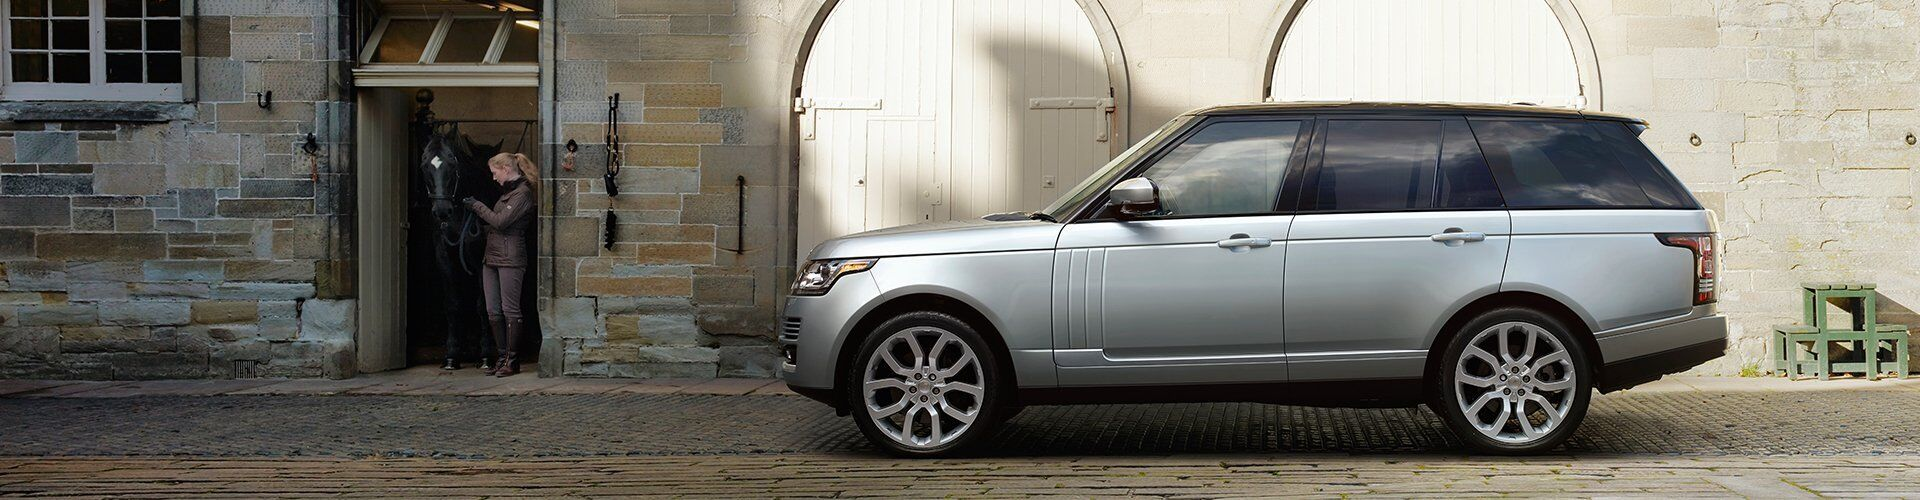 New Range Rover at Land Rover Warwick